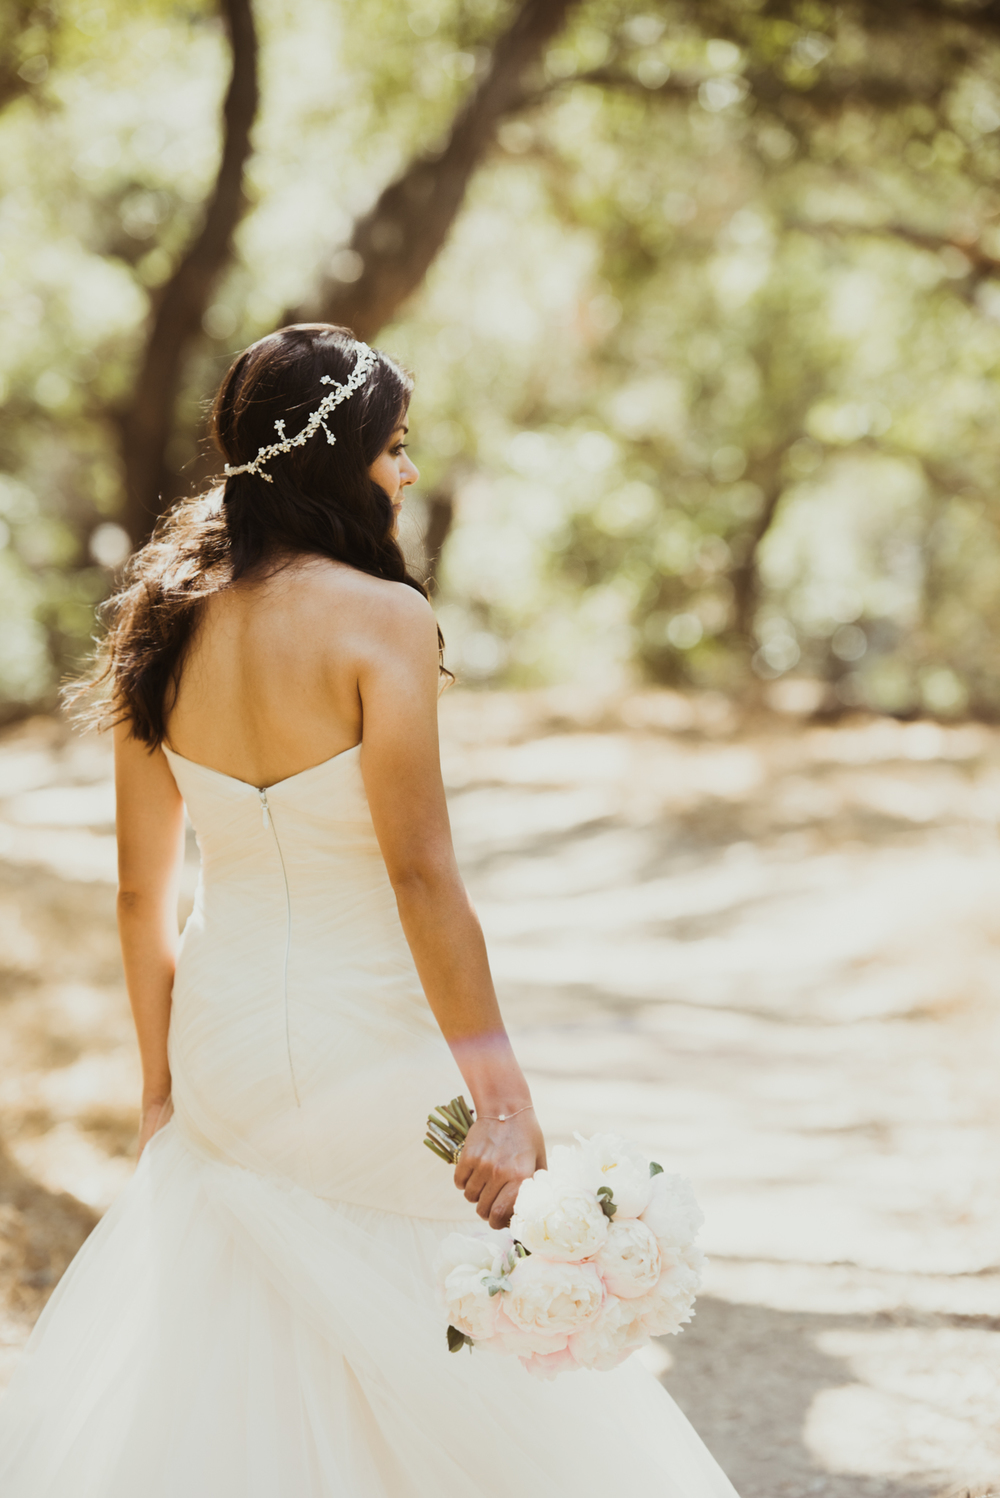 ©Isaiah & Taylor Photography - Inn of the Seventh Ray Wedding, Topanga Canyon California-27.jpg